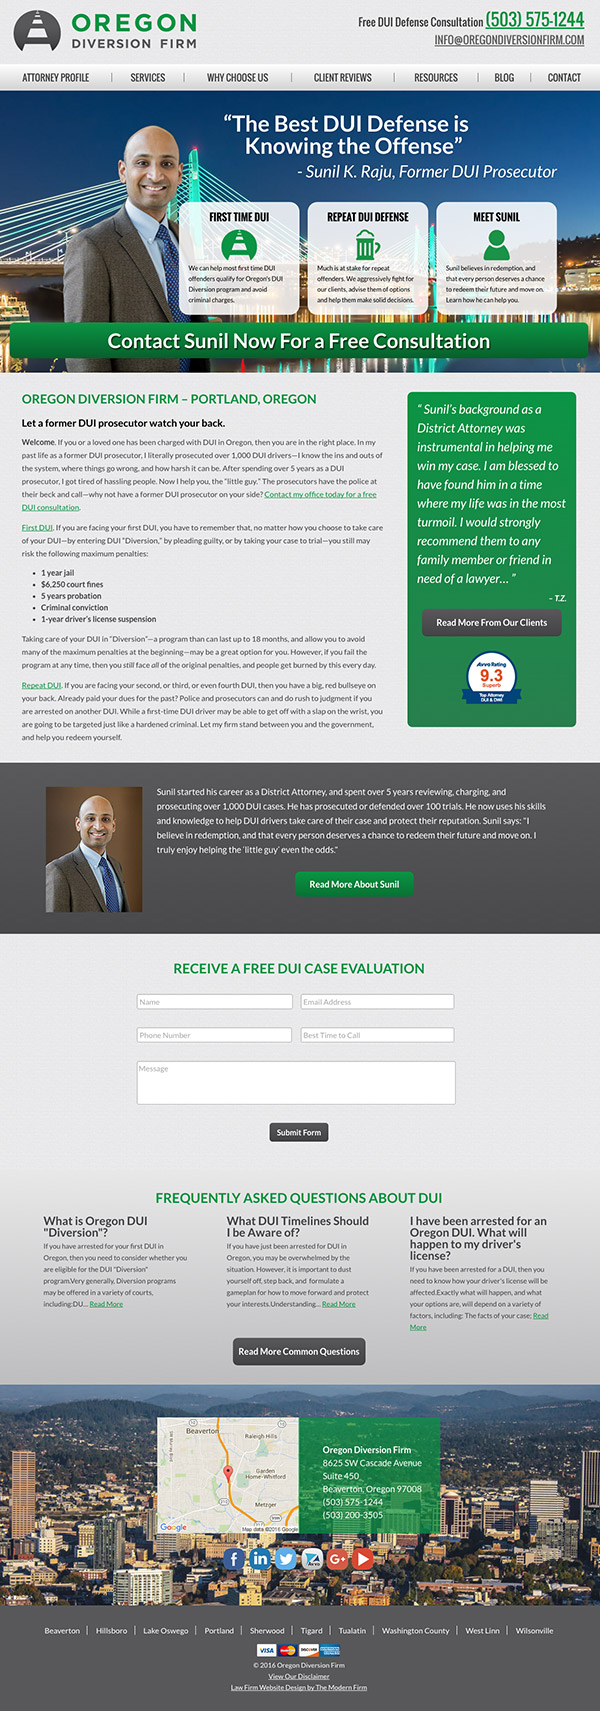 Law Firm Website Design for Oregon Diversion Firm